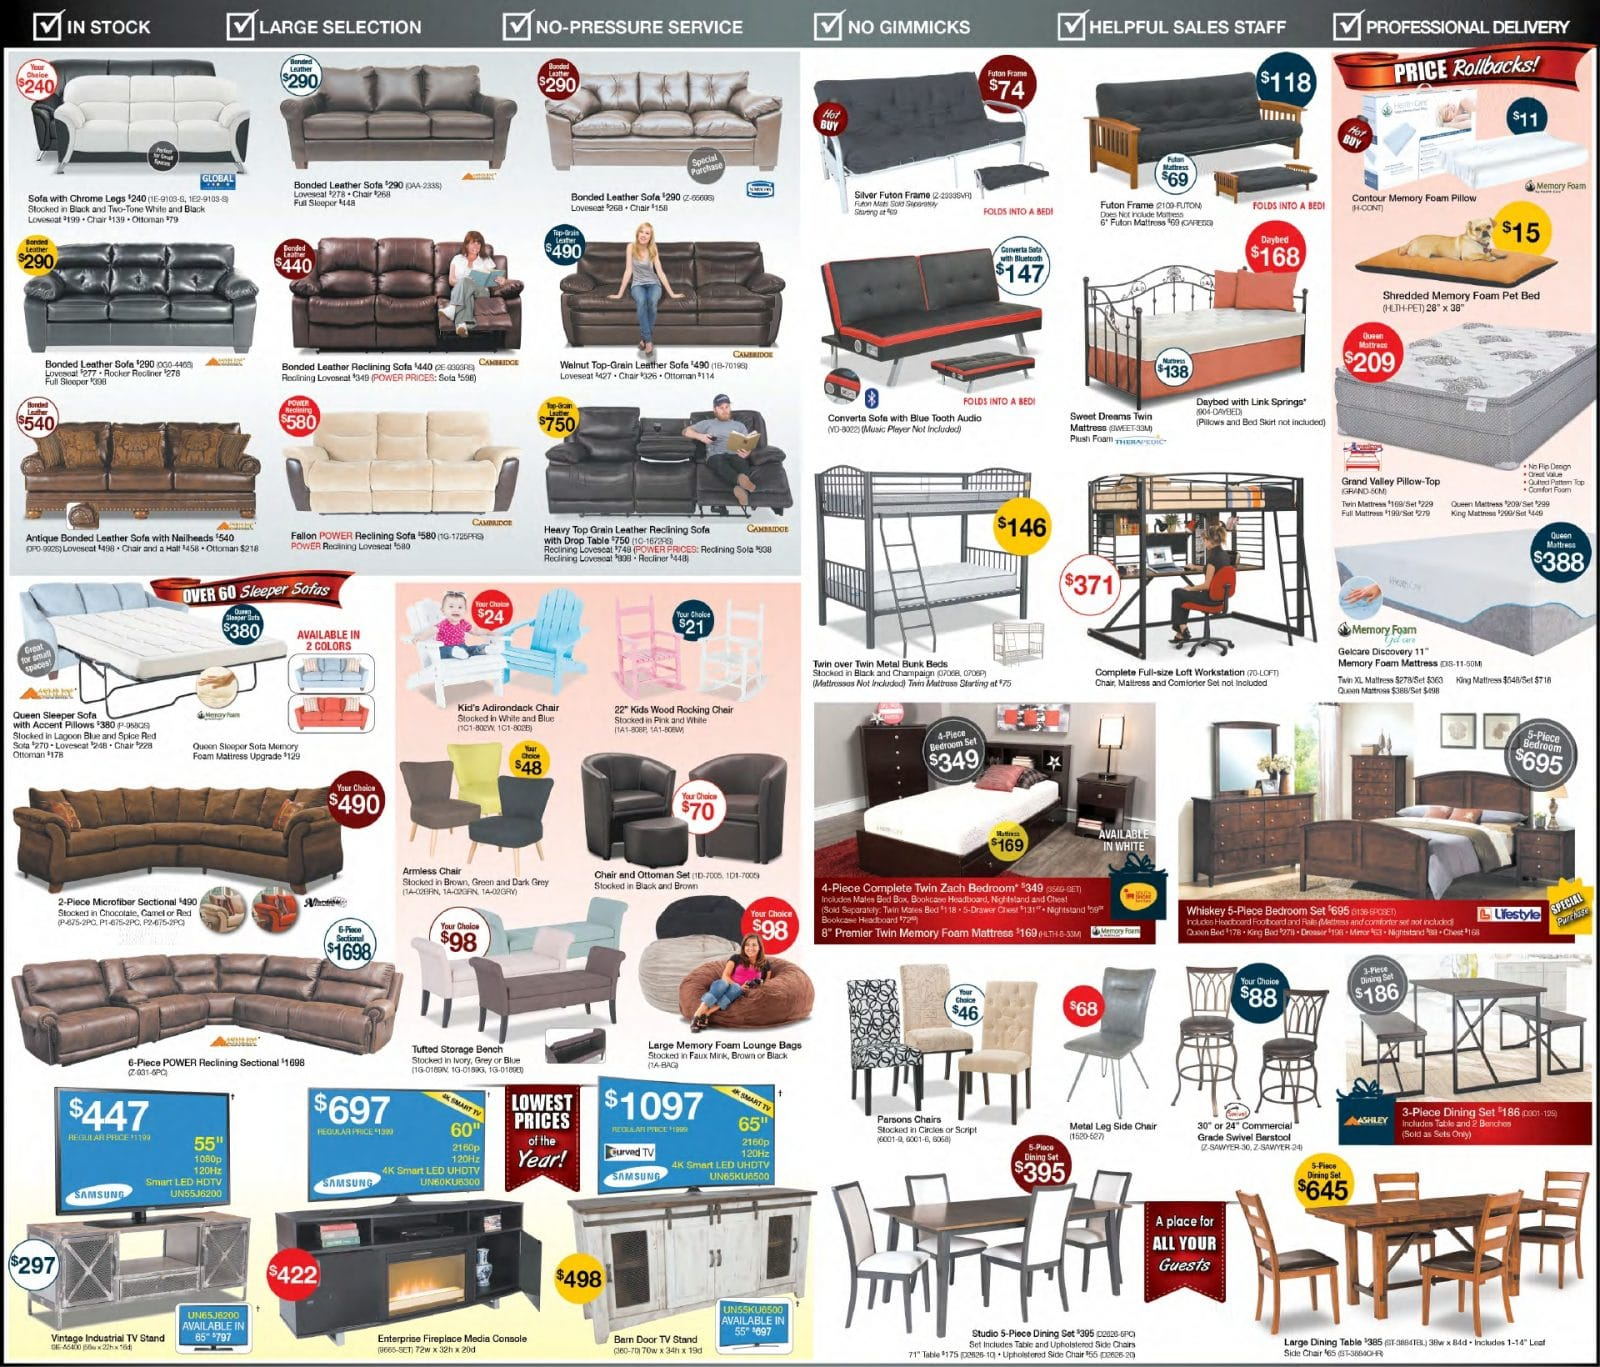 Furniture Store Ads: American Furniture Warehouse Black Friday Ad 2016